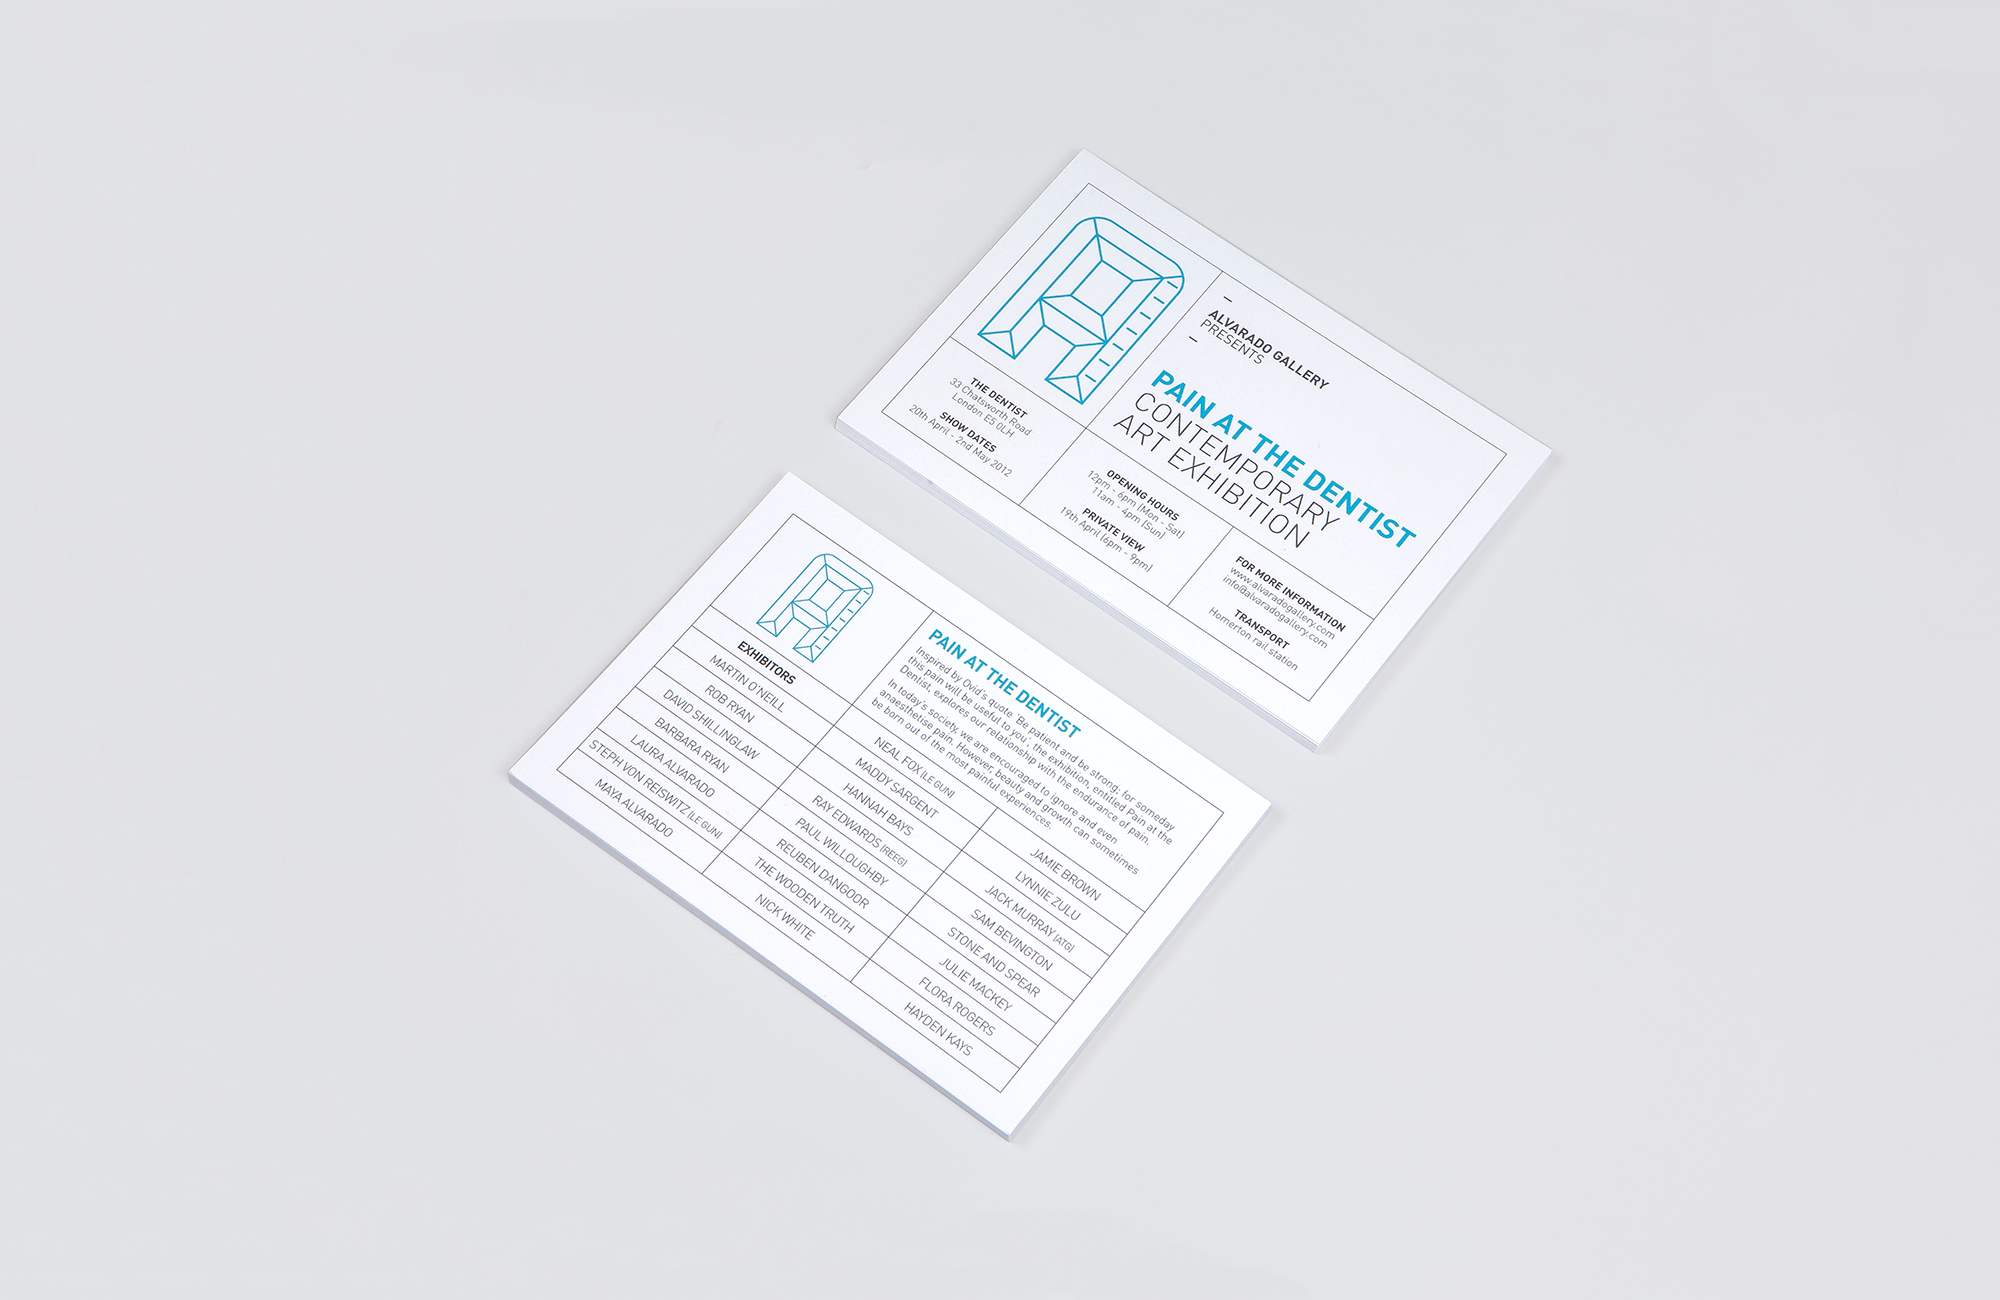 All Works Co._Graphic_Design_Studio_London_PainAtTheDentist_Campaign_Print_Postcard